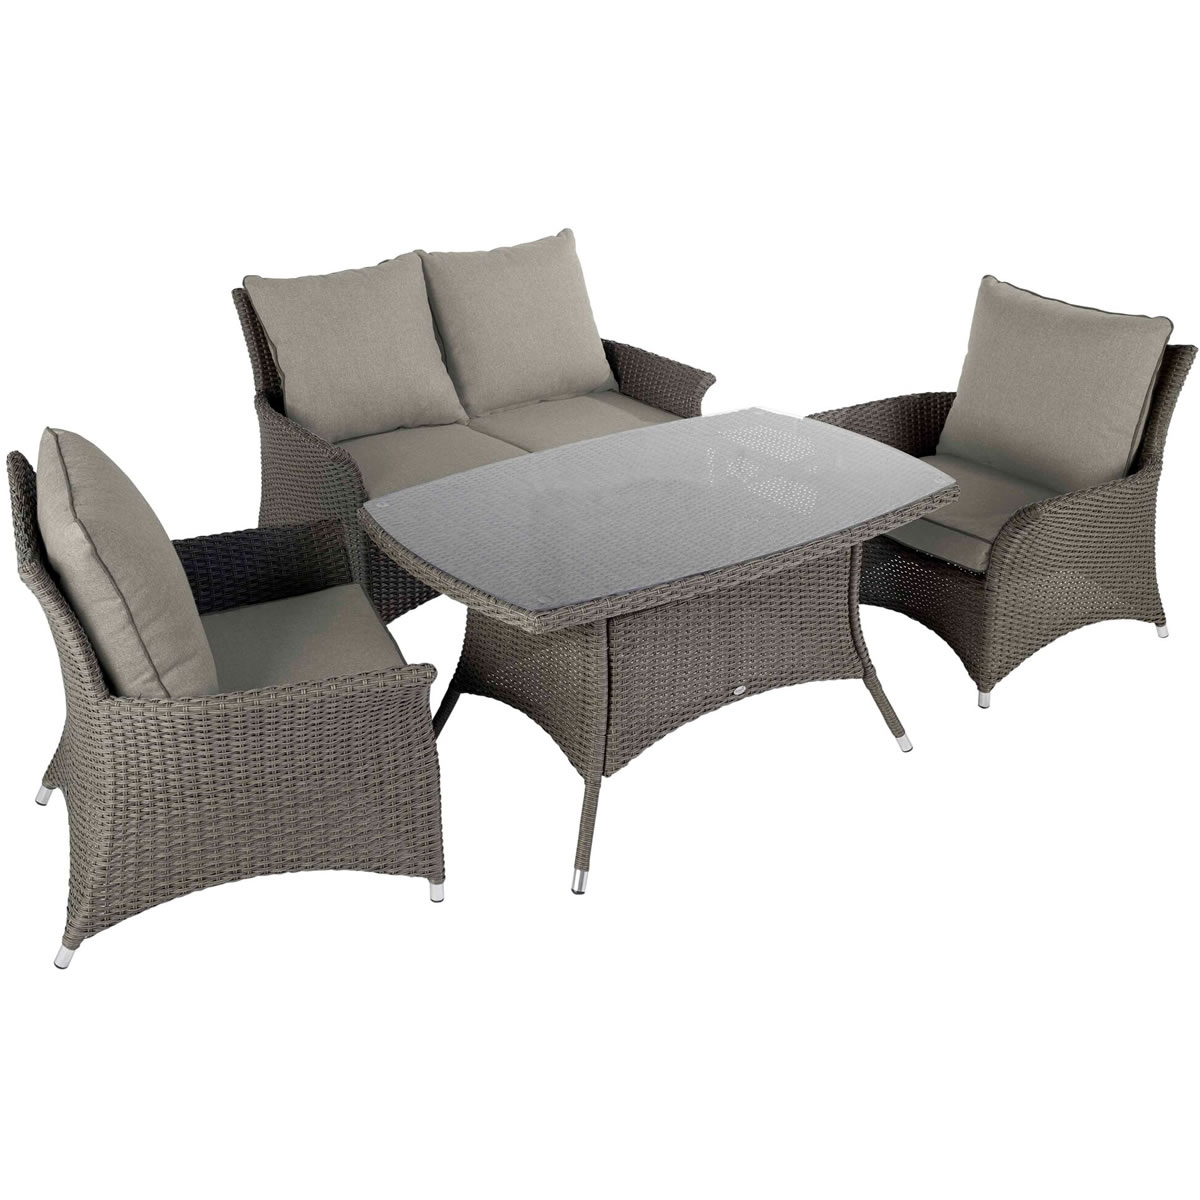 2017 Hartman Madison Casual Lounge Dining Set In Slate